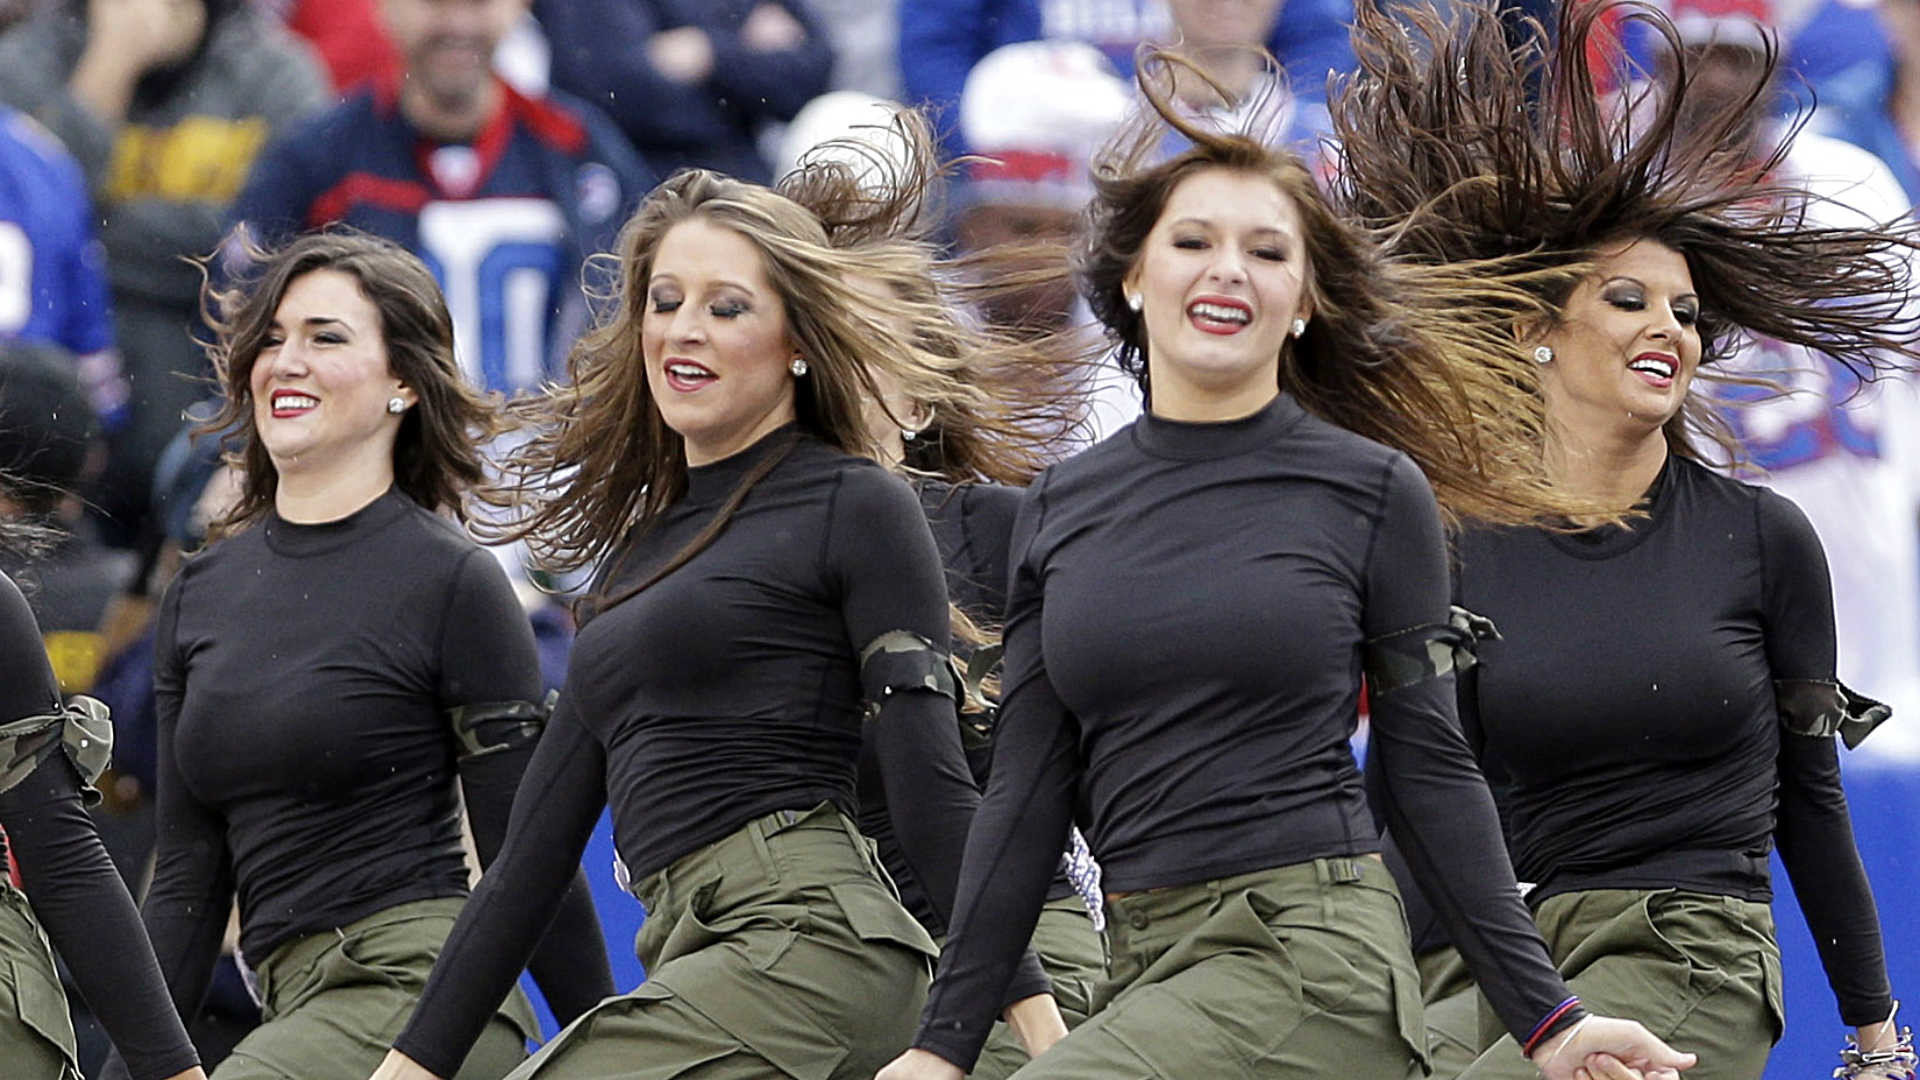 NFL cheerleaders bring in money, but barely paid any   NFL   Sporting News